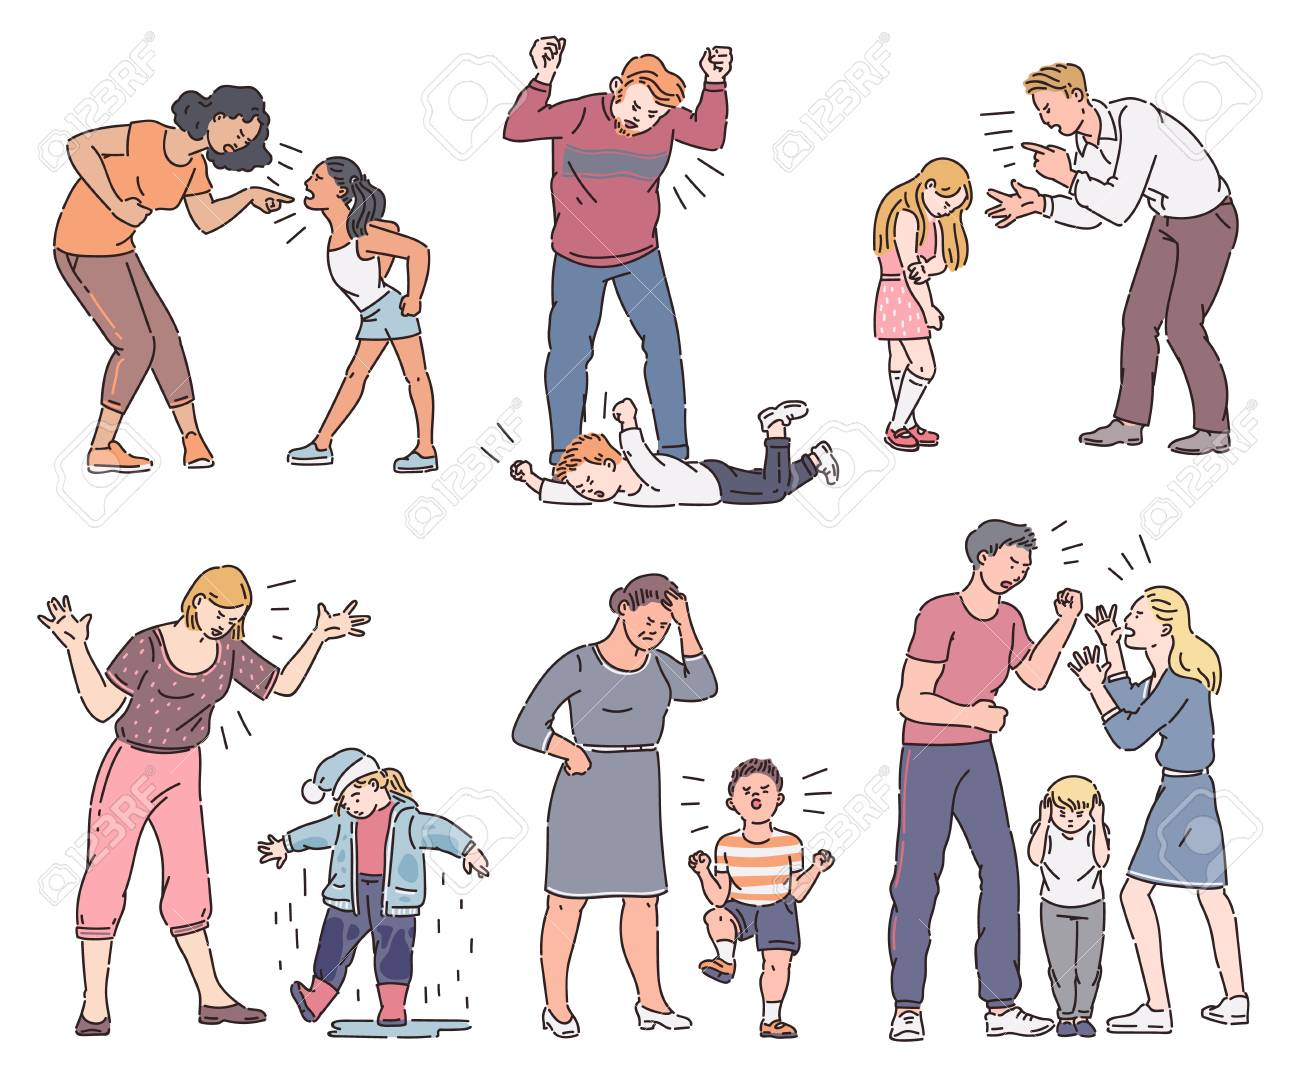 Set of angry parent with emotional child, father and mother screaming at son or daughter, collection of different types of conflict. Isolated vector illustration in cartoon sketch style. - 128170275